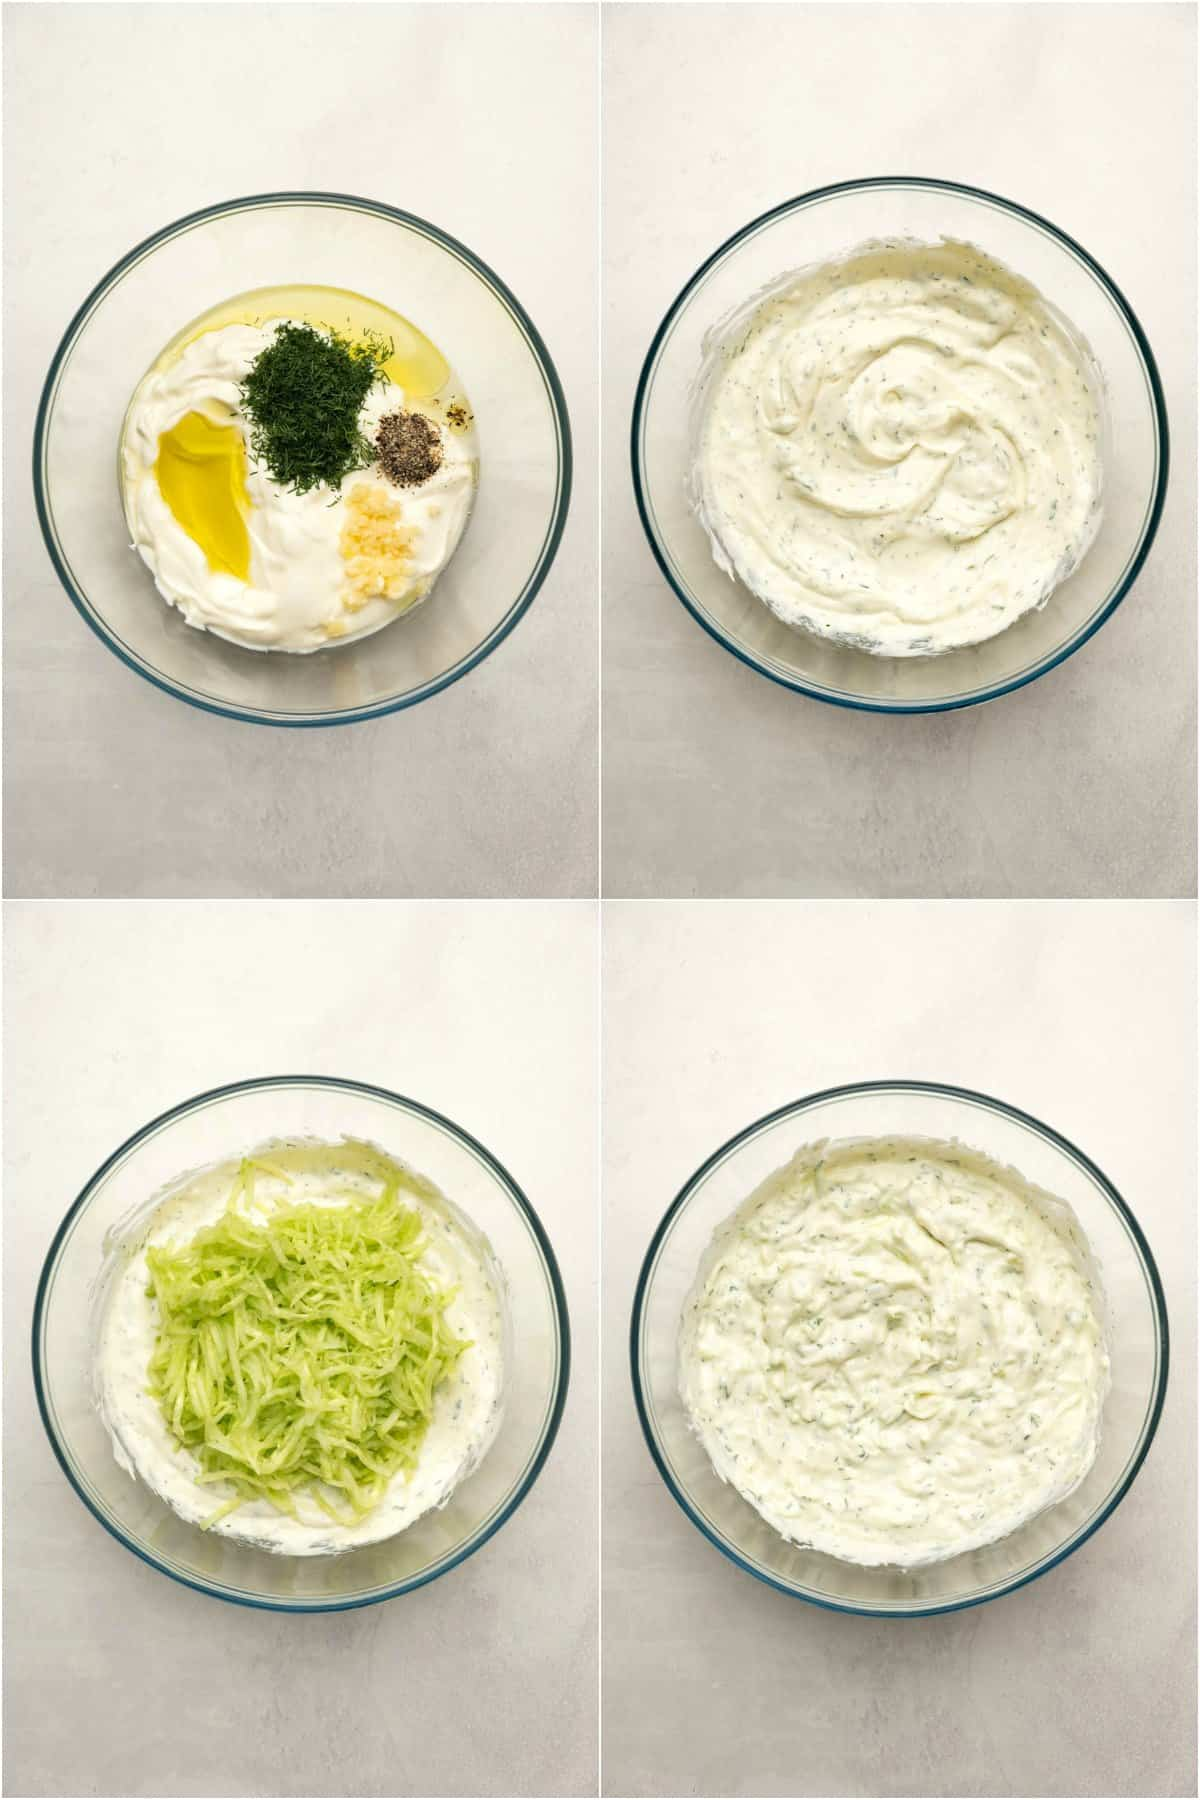 Step by step process photo collage of making tzatziki.